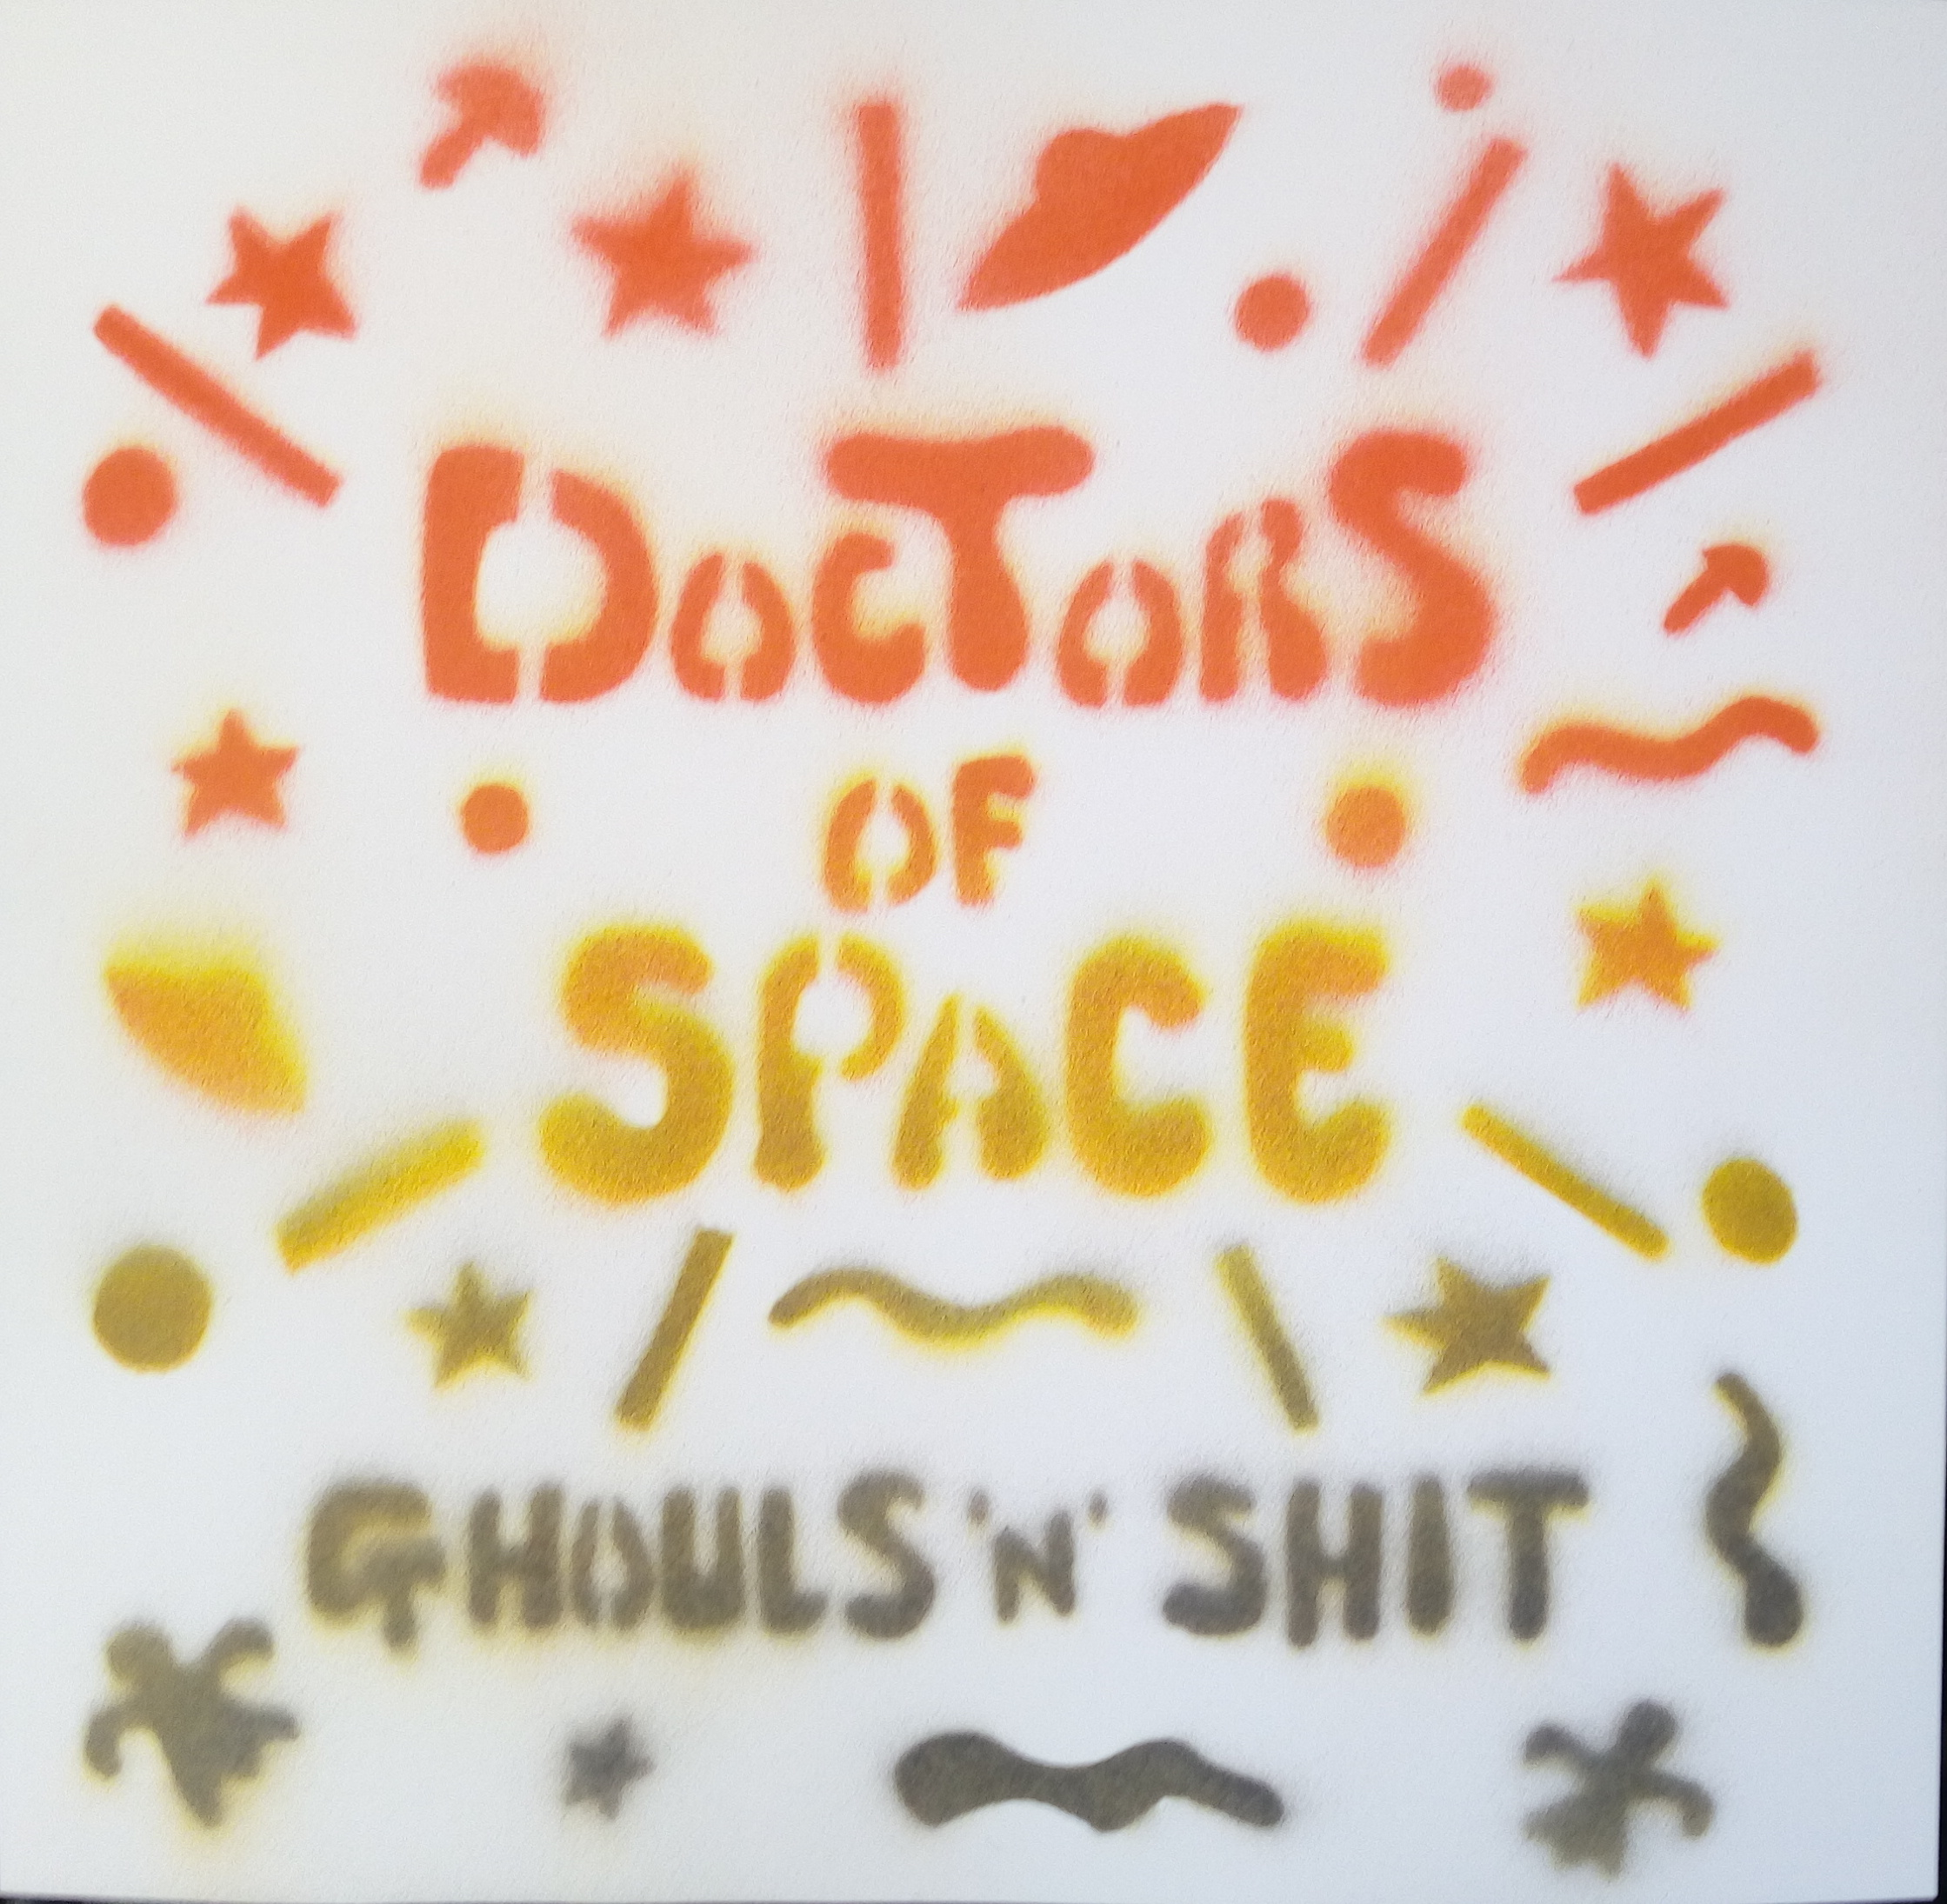 doctors of space ghouls n shit